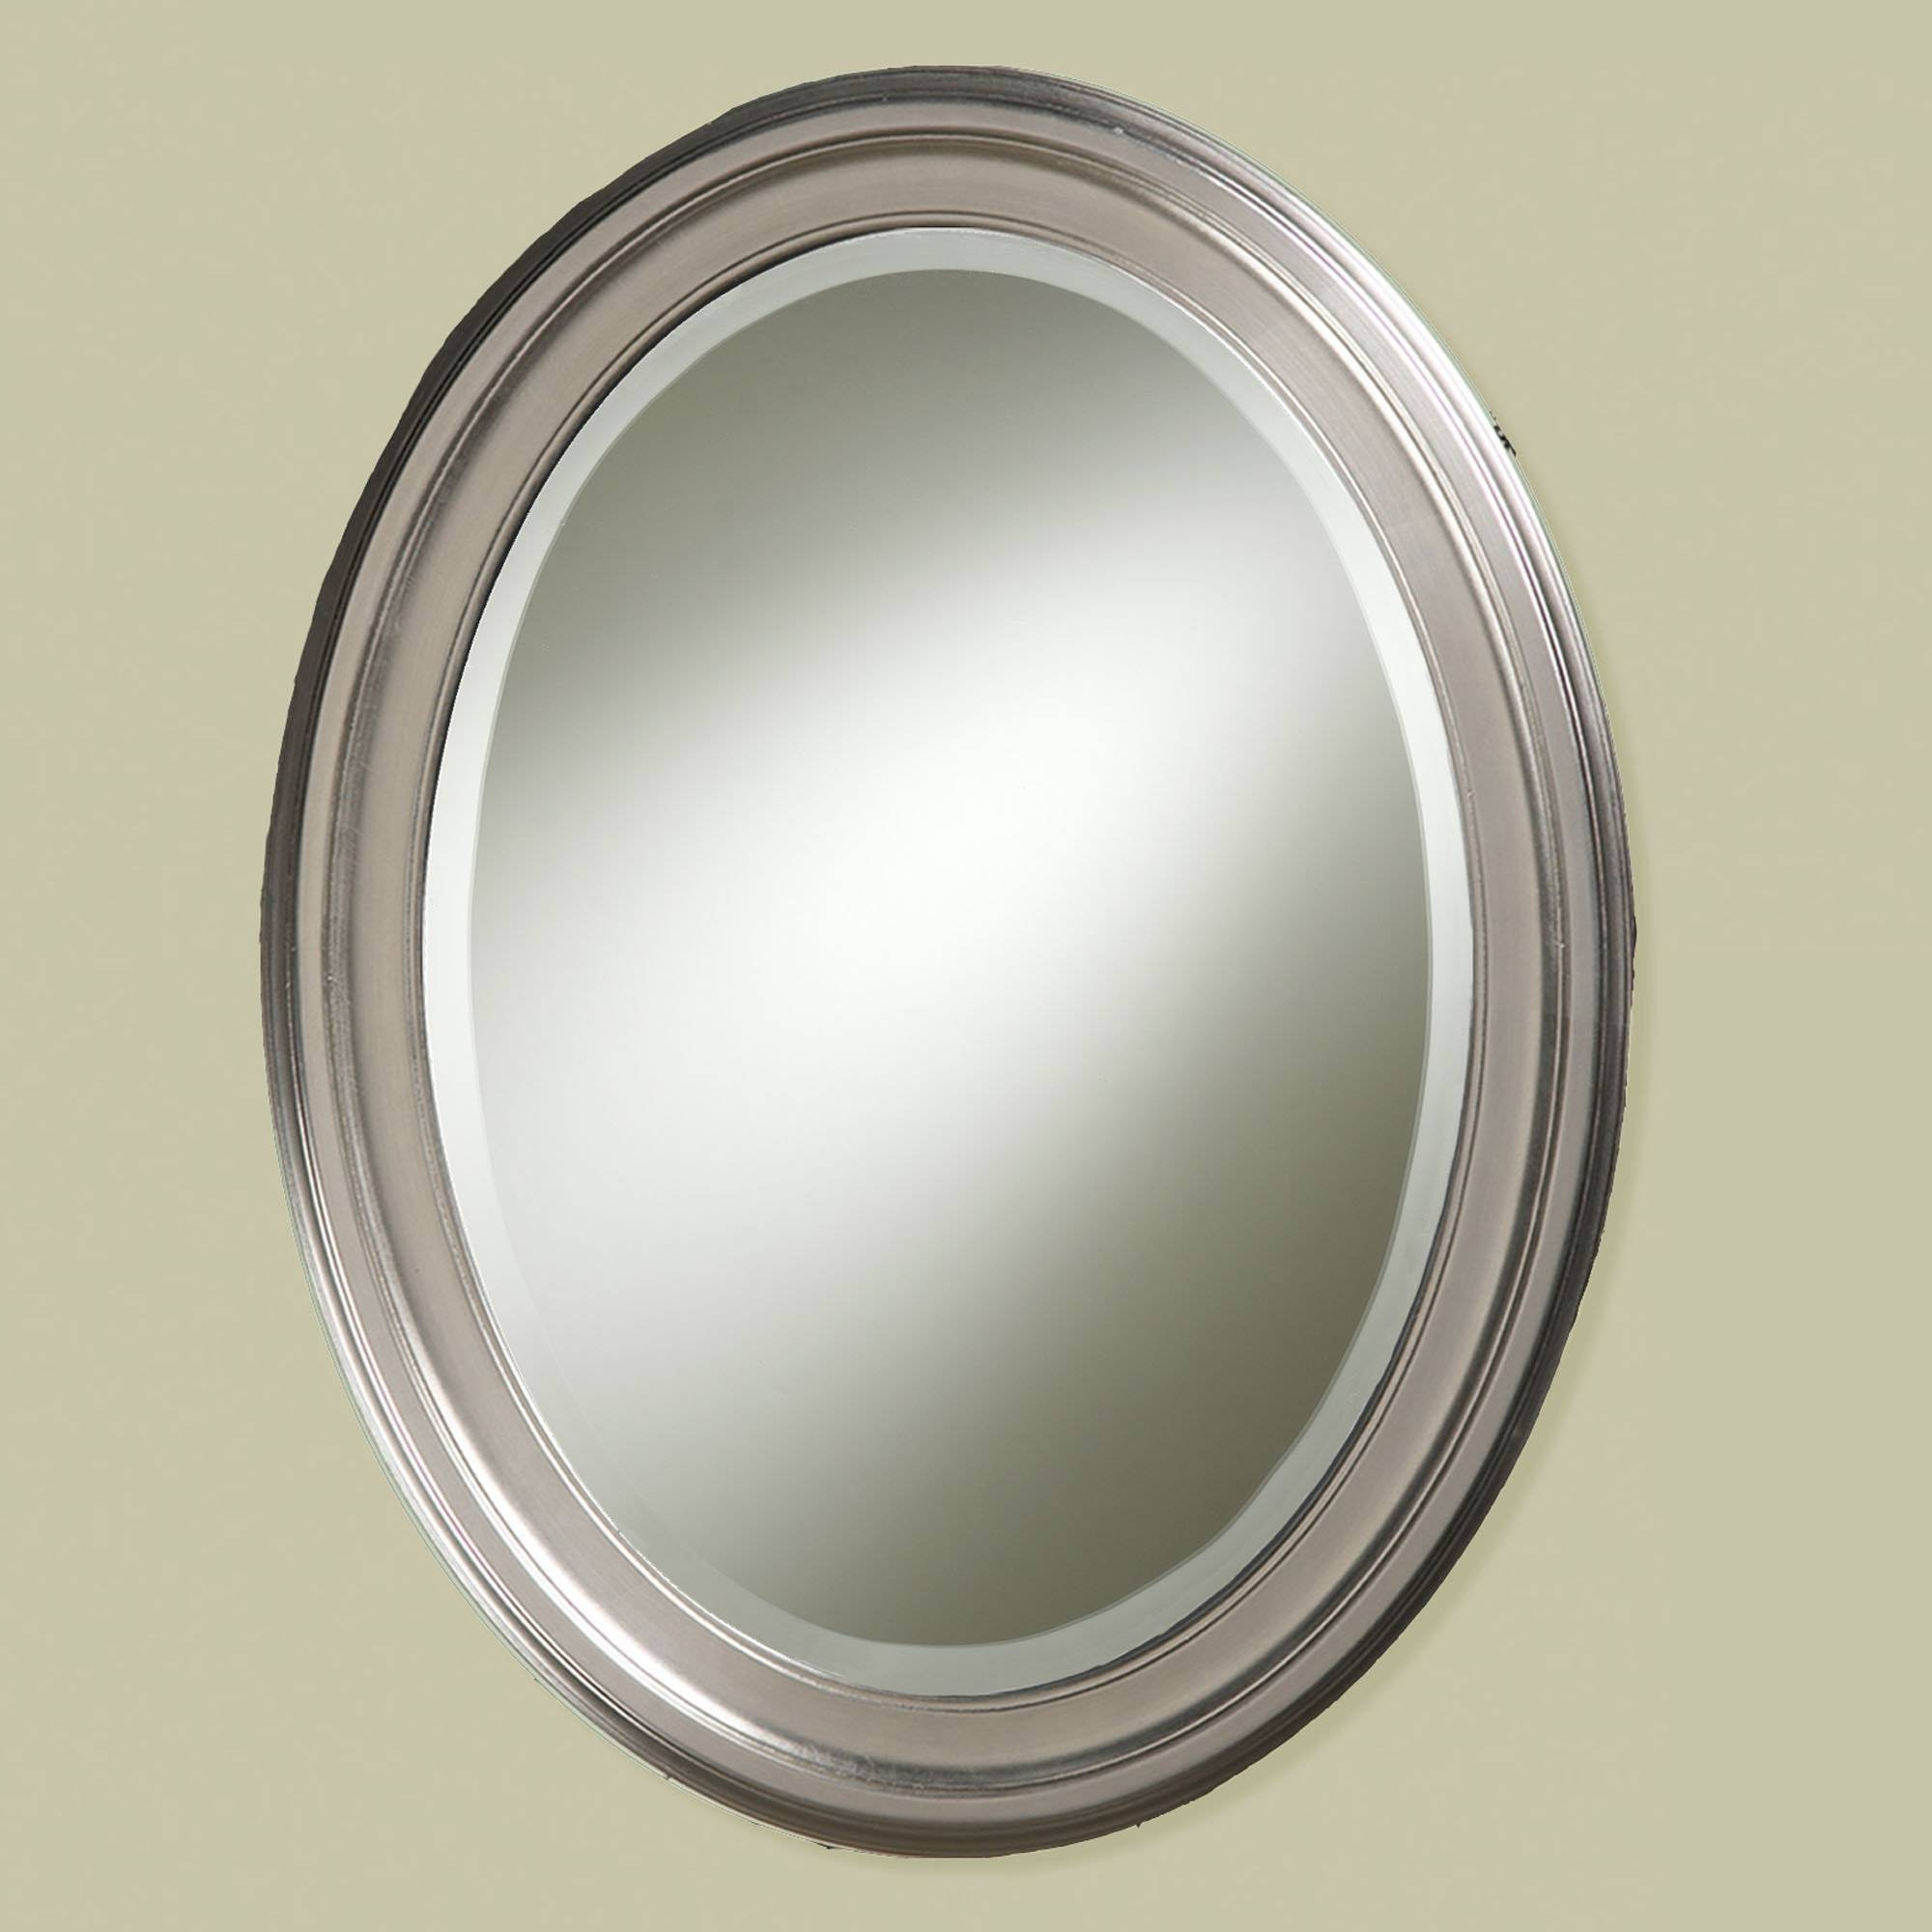 Bathroom: Bronze Framed Mirror | Oval Mirrors For Bathroom | Oval intended for Oval Mirrors for Walls (Image 6 of 25)